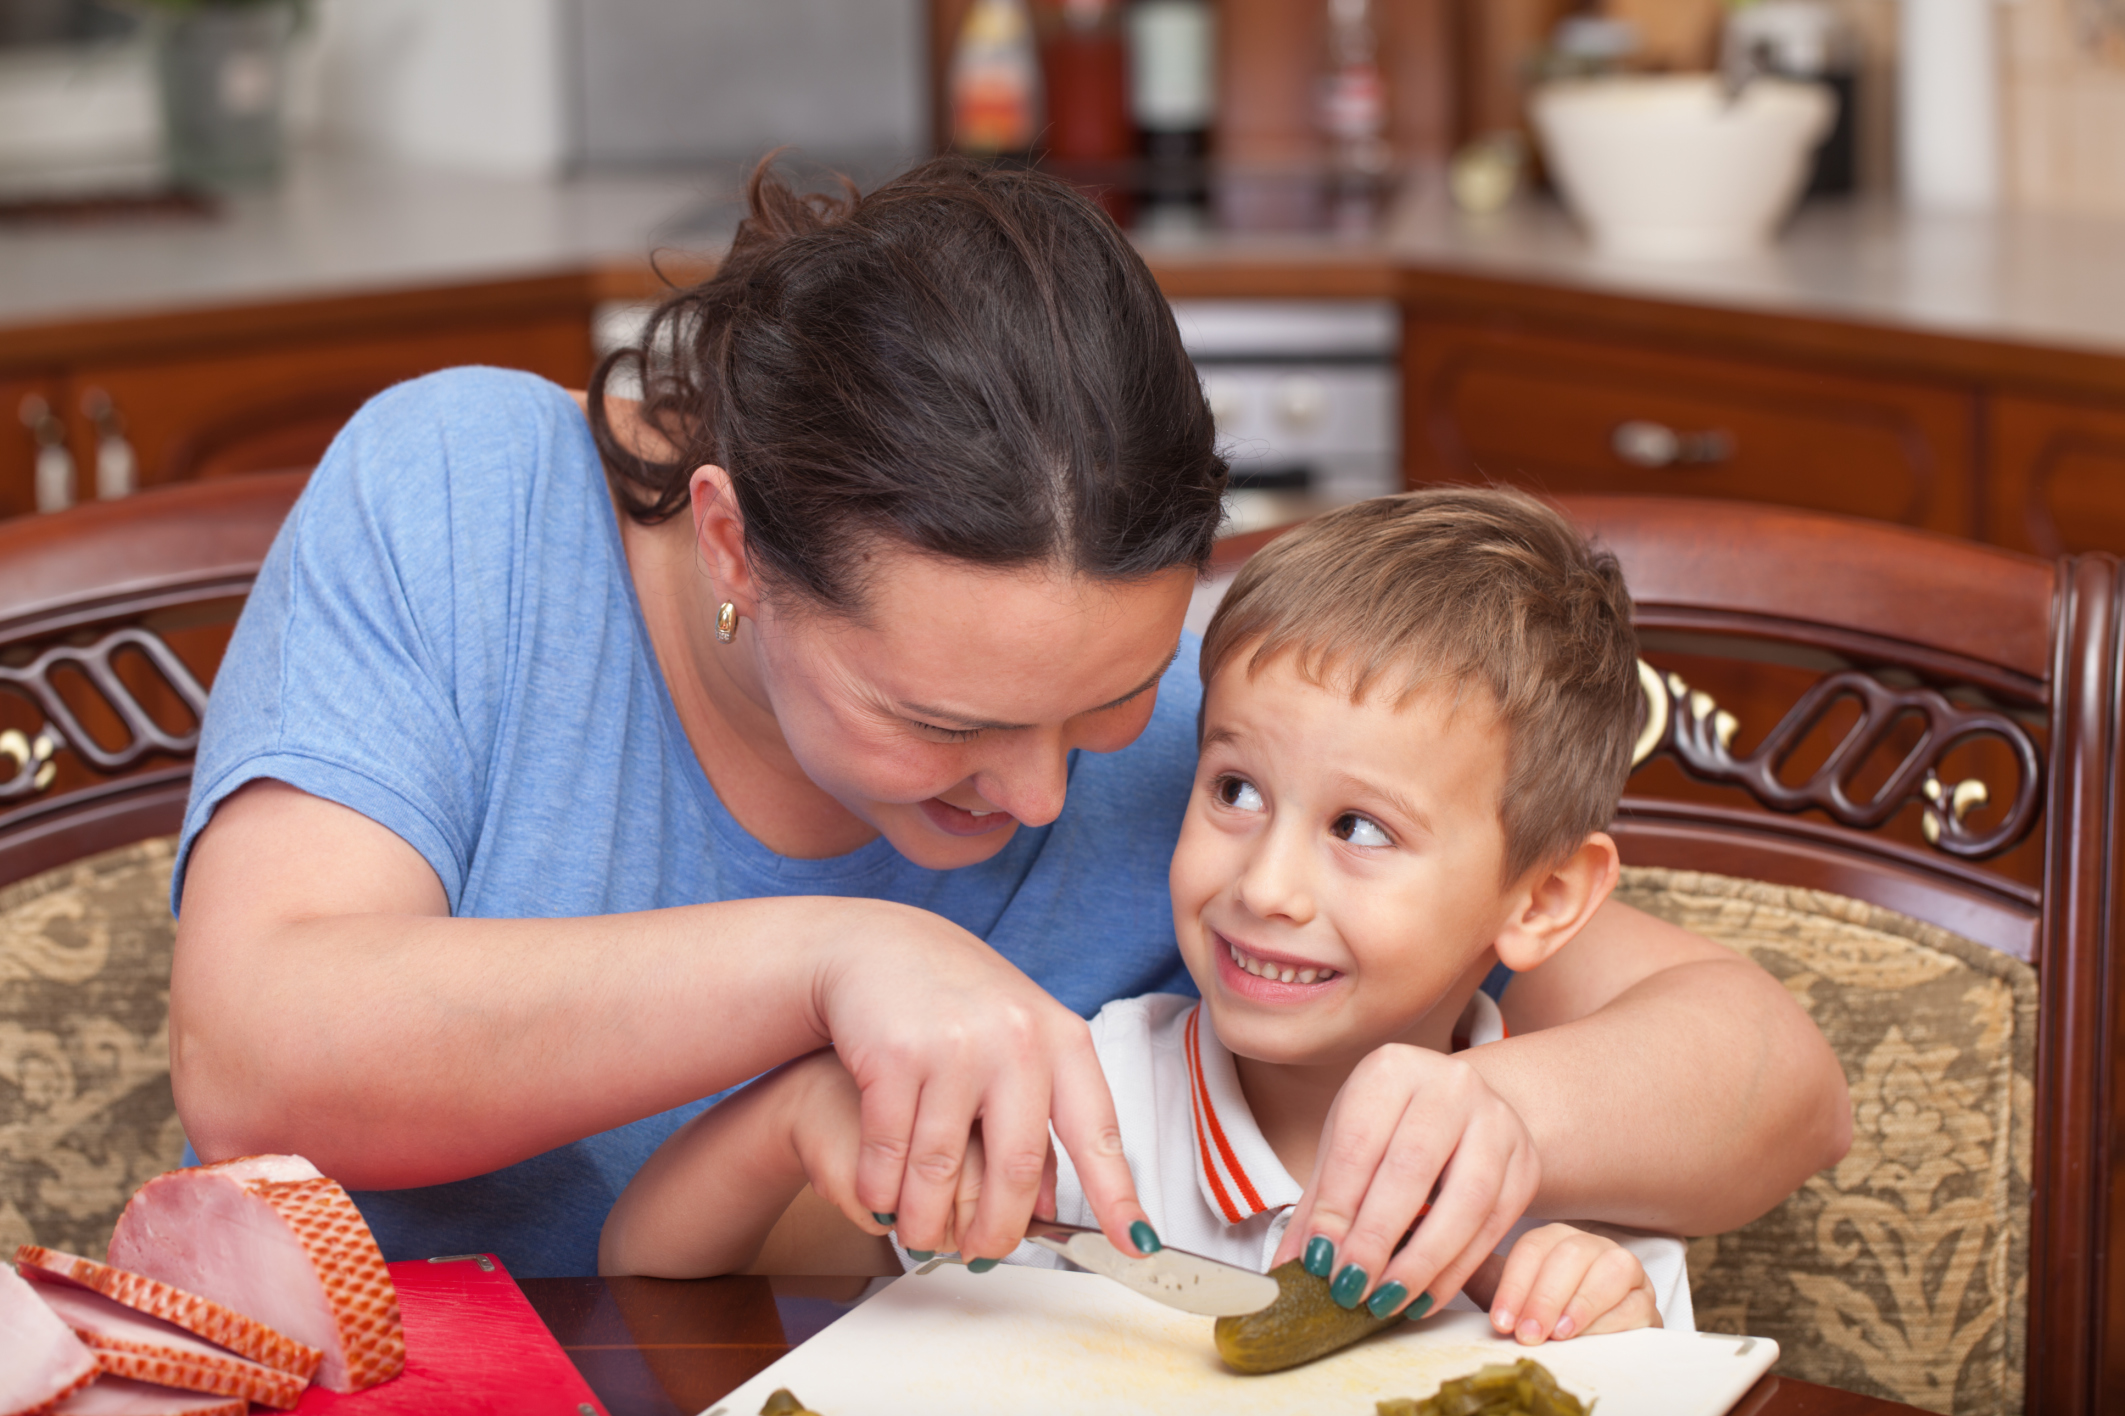 Solutions To The Effects Of Single Parent Familes On